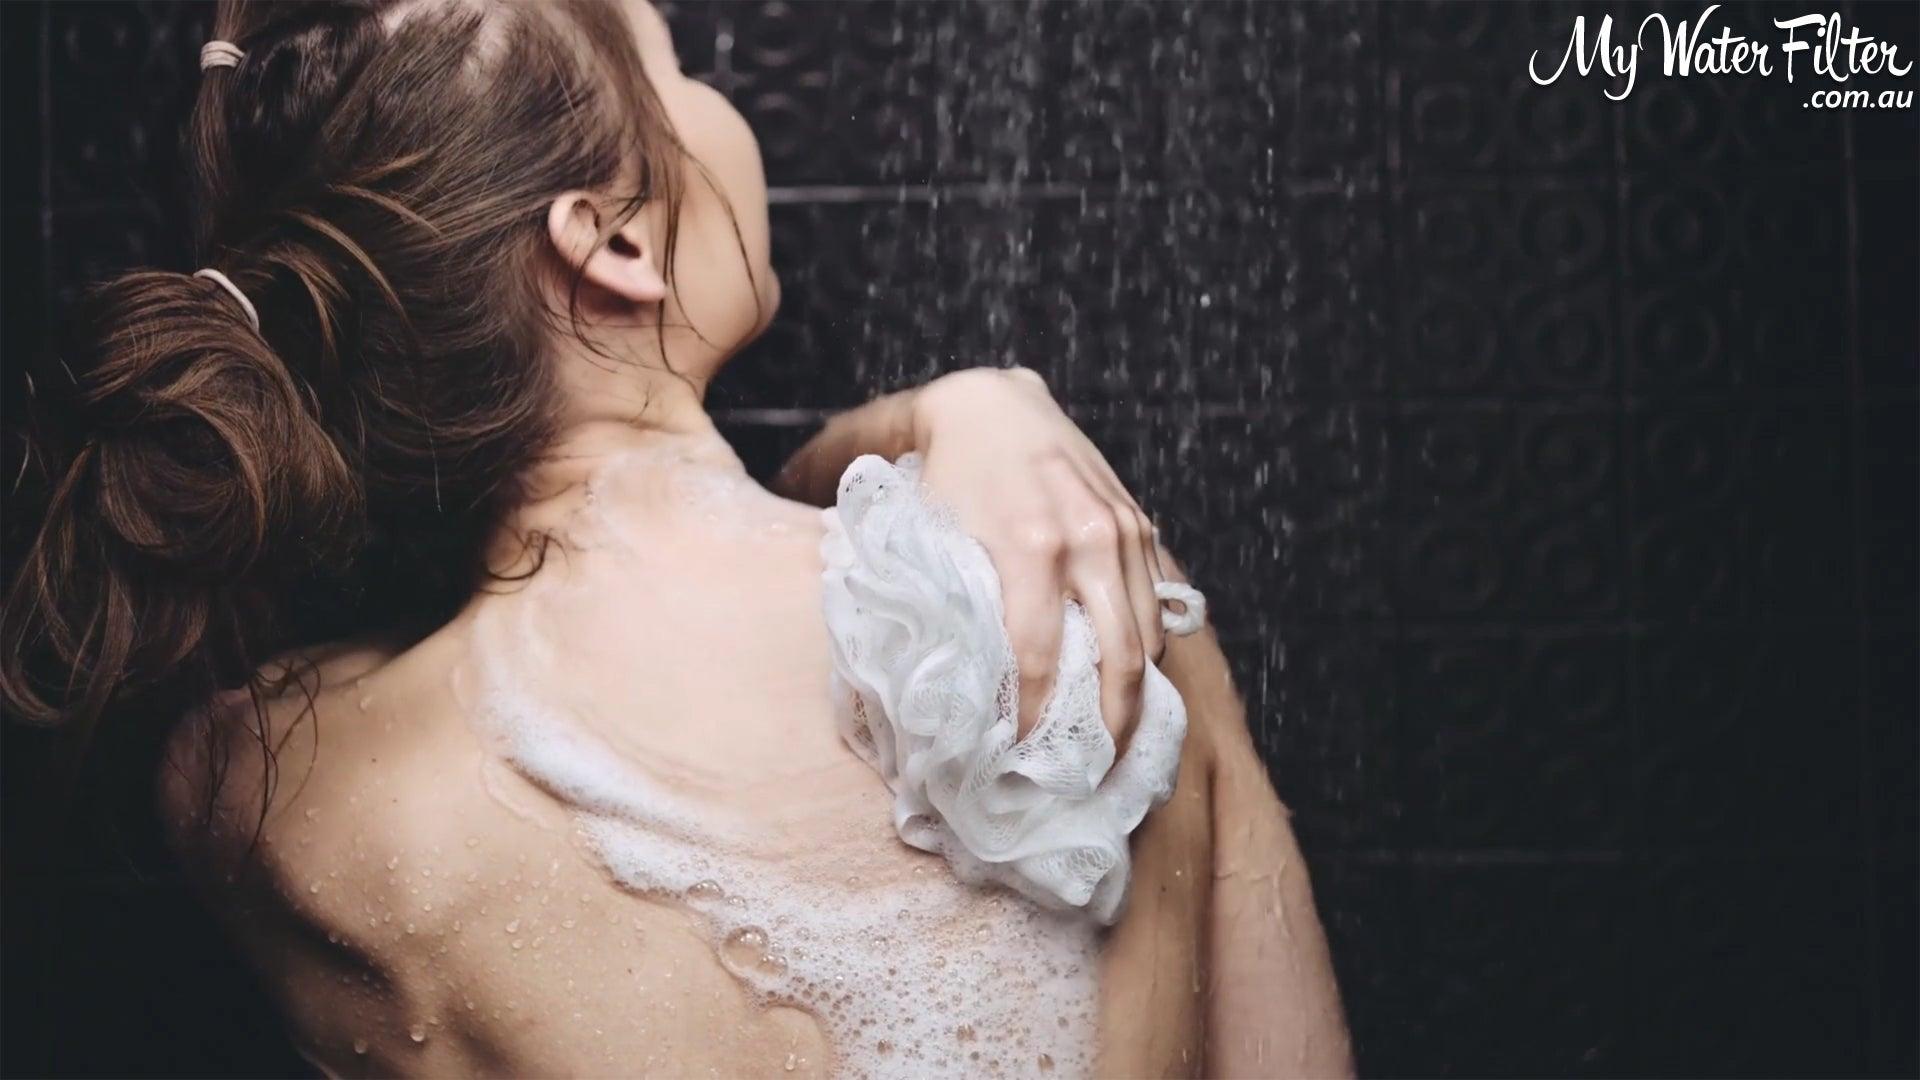 Lady scrubbing her back in the shower